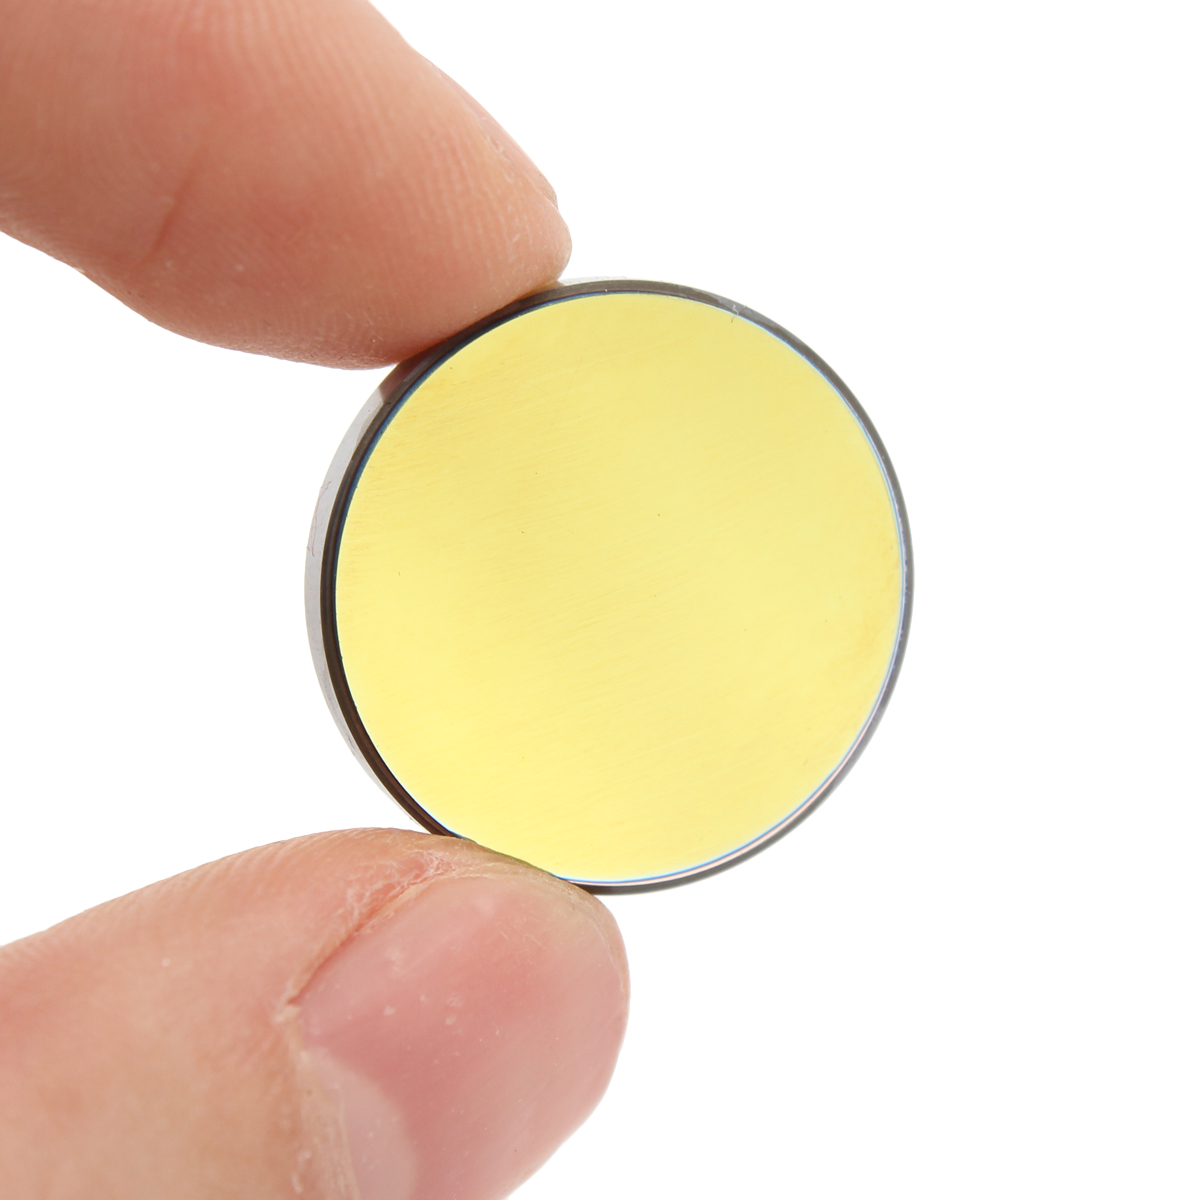 3Pcs Reflective Mirror Reflector Si Coated Gold for CO2 Laser Cutting Engraving